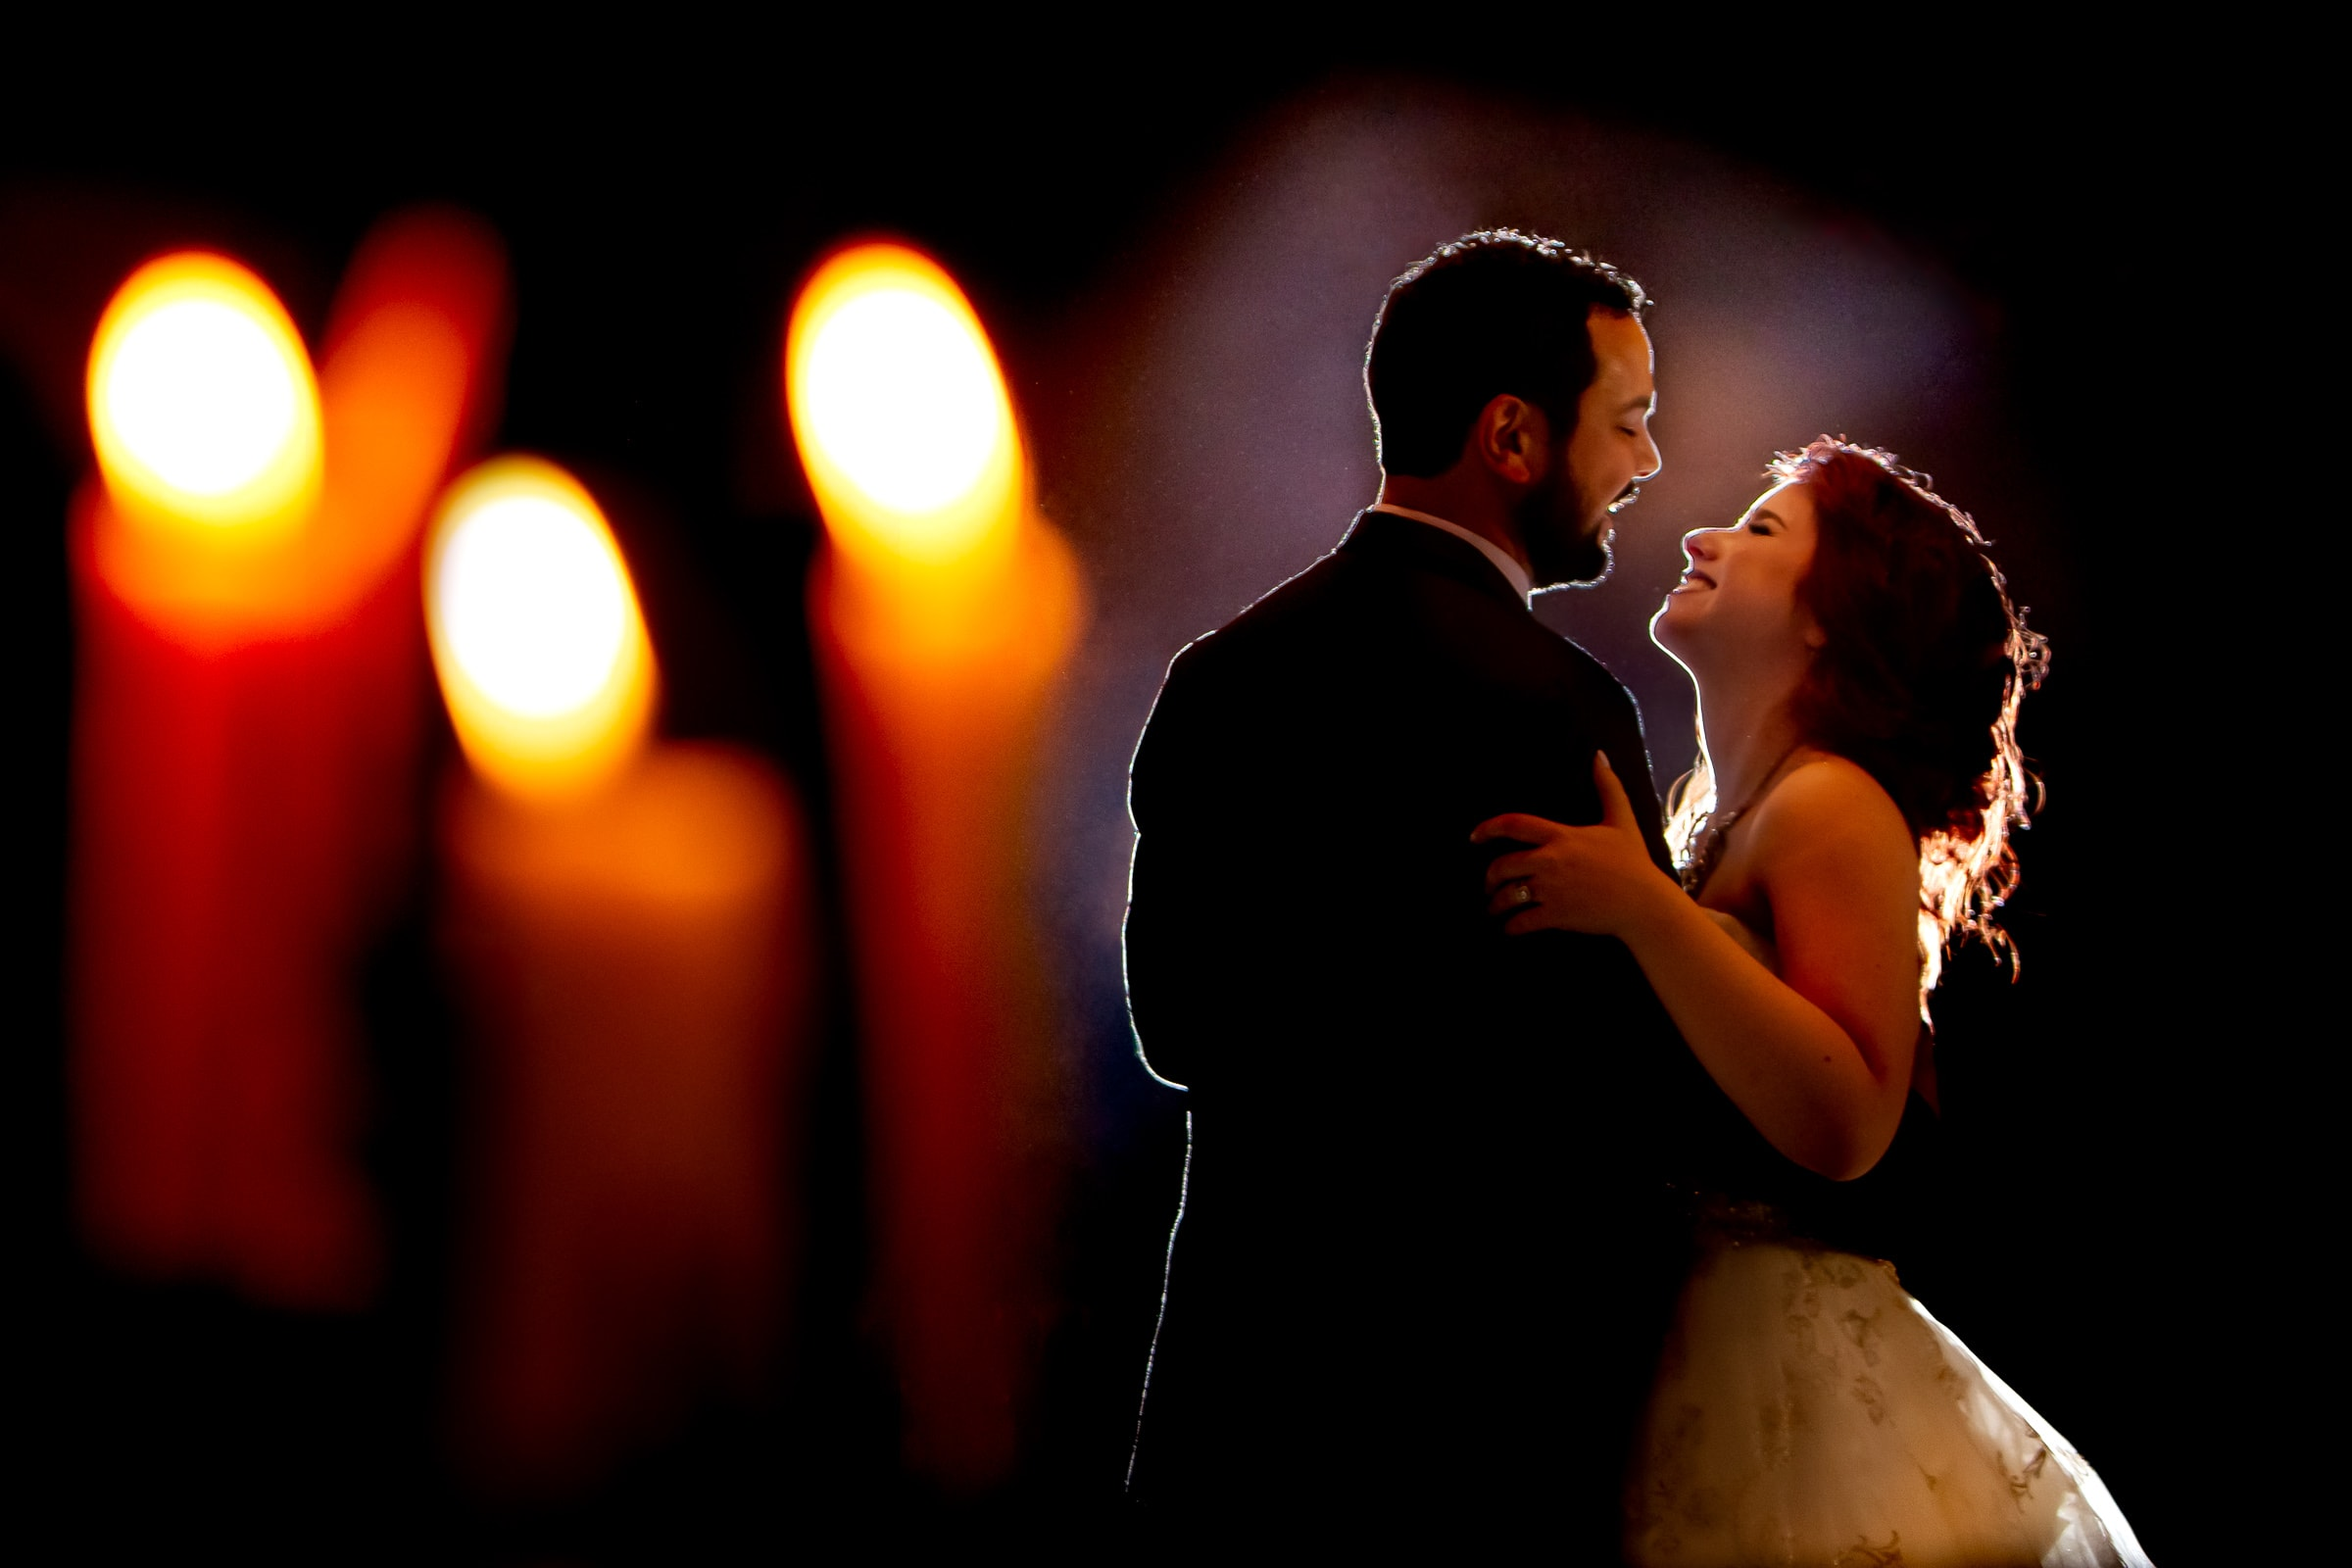 Amazing bride and groom photo captured through candle light for their first dance during their Resort at the Mountain wedding near Mt Hood in Oregon